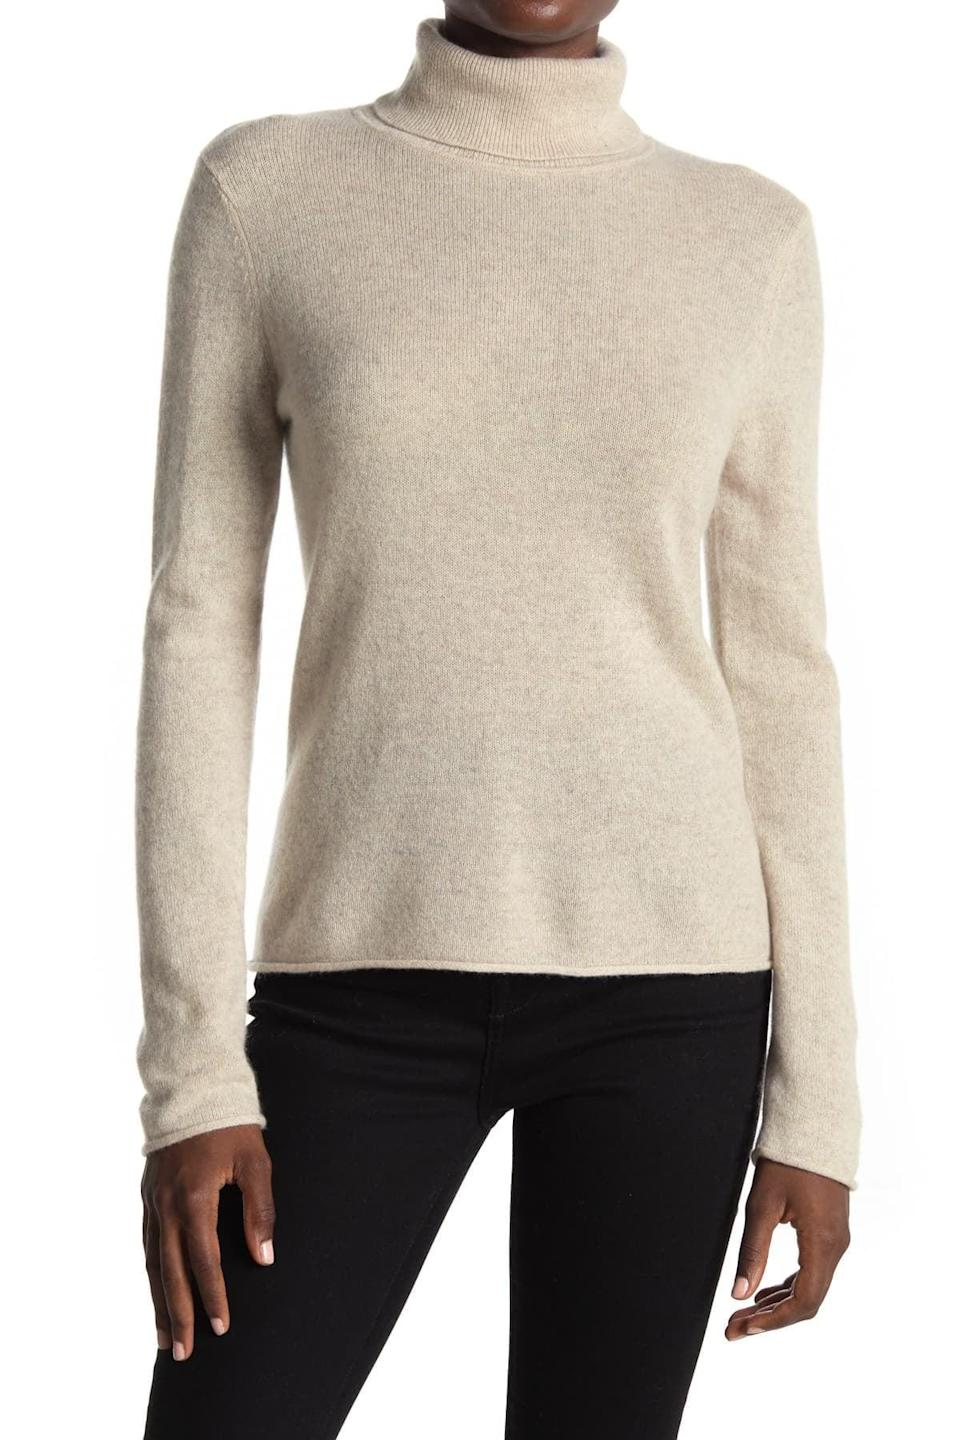 <p>Winter dressing looks a lot chicer with this classic <span>14th &amp; Union Turtleneck Cashmere Sweater</span> ($37, originally $60).</p>